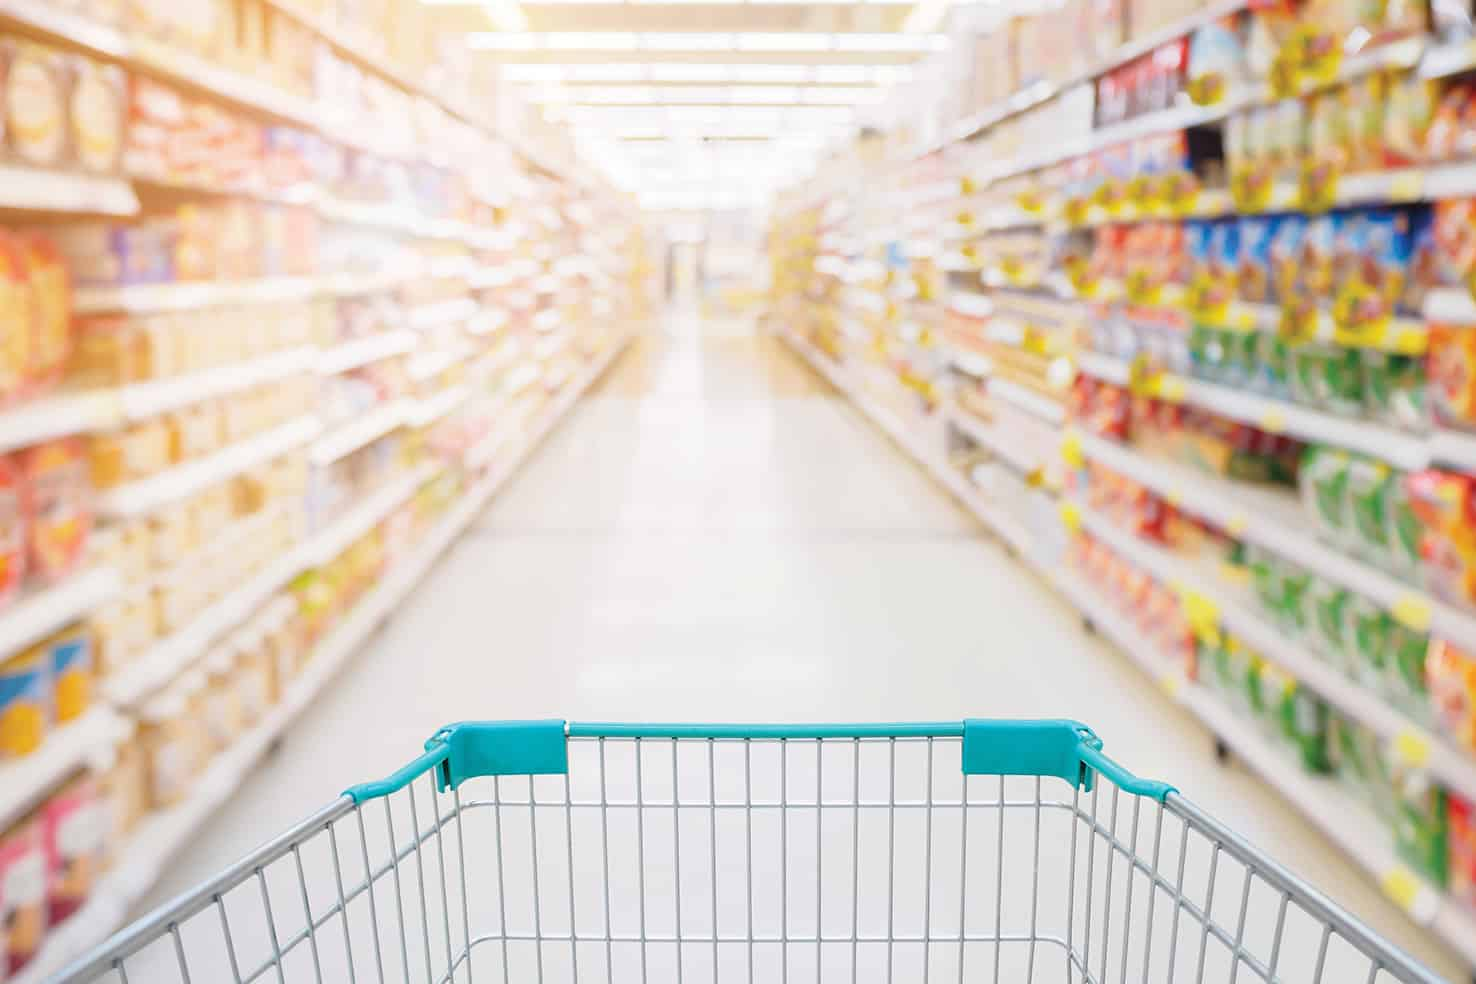 Are grocery shop owners off their trolley?